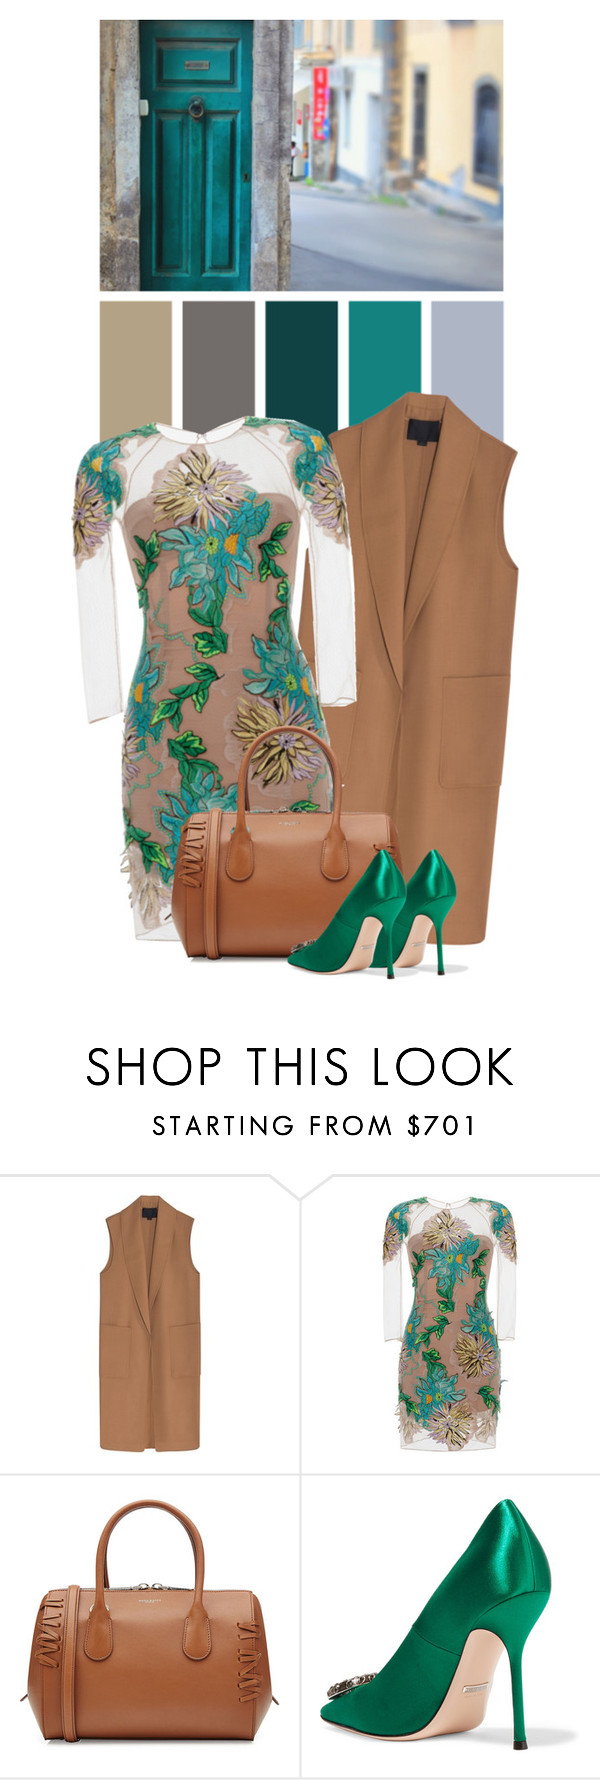 """Dahlia"" by cherieaustin ❤ liked on Polyvore featuring Alexander Wang, Blumarine, Nina Ricci and Gucci"